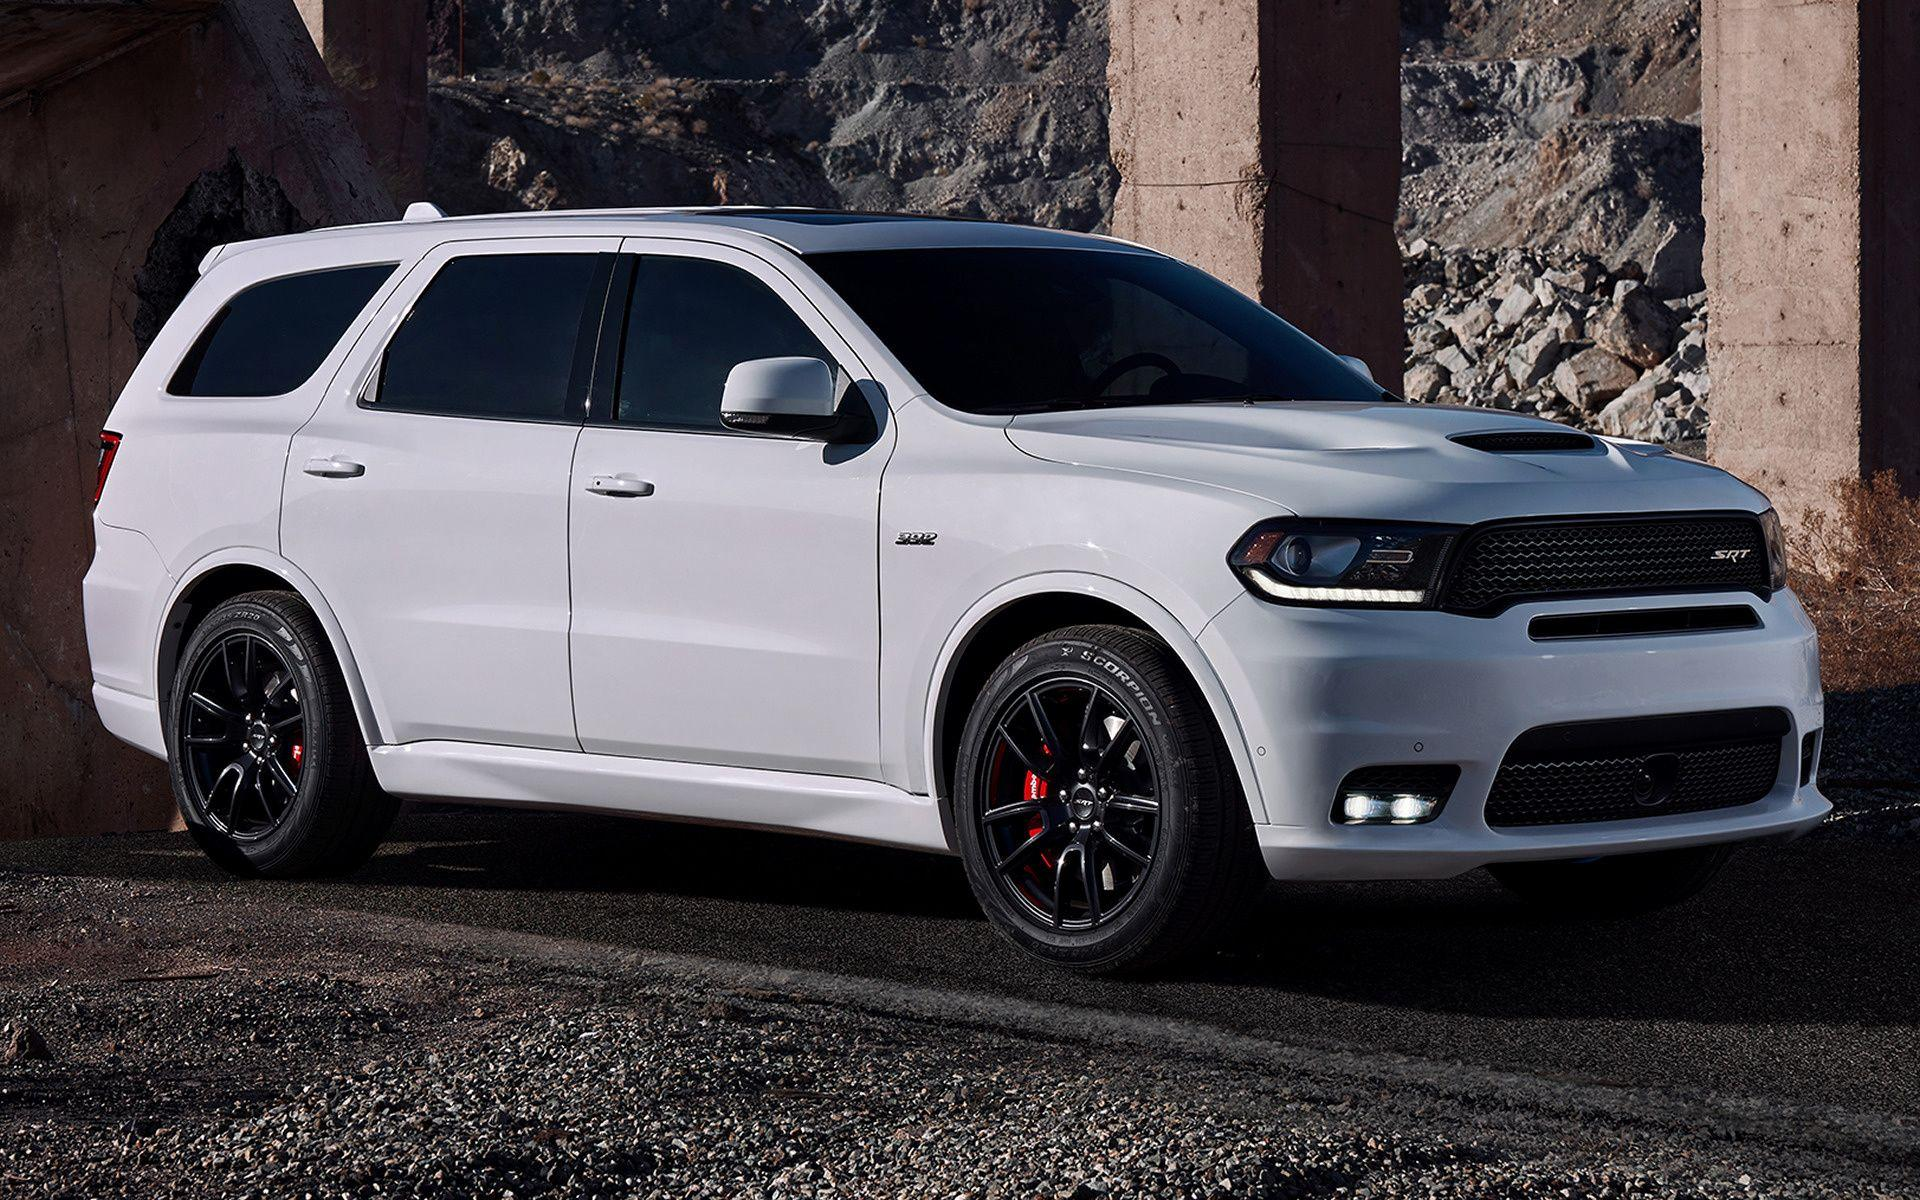 dodge durango srt wallpapers - wallpaper cave